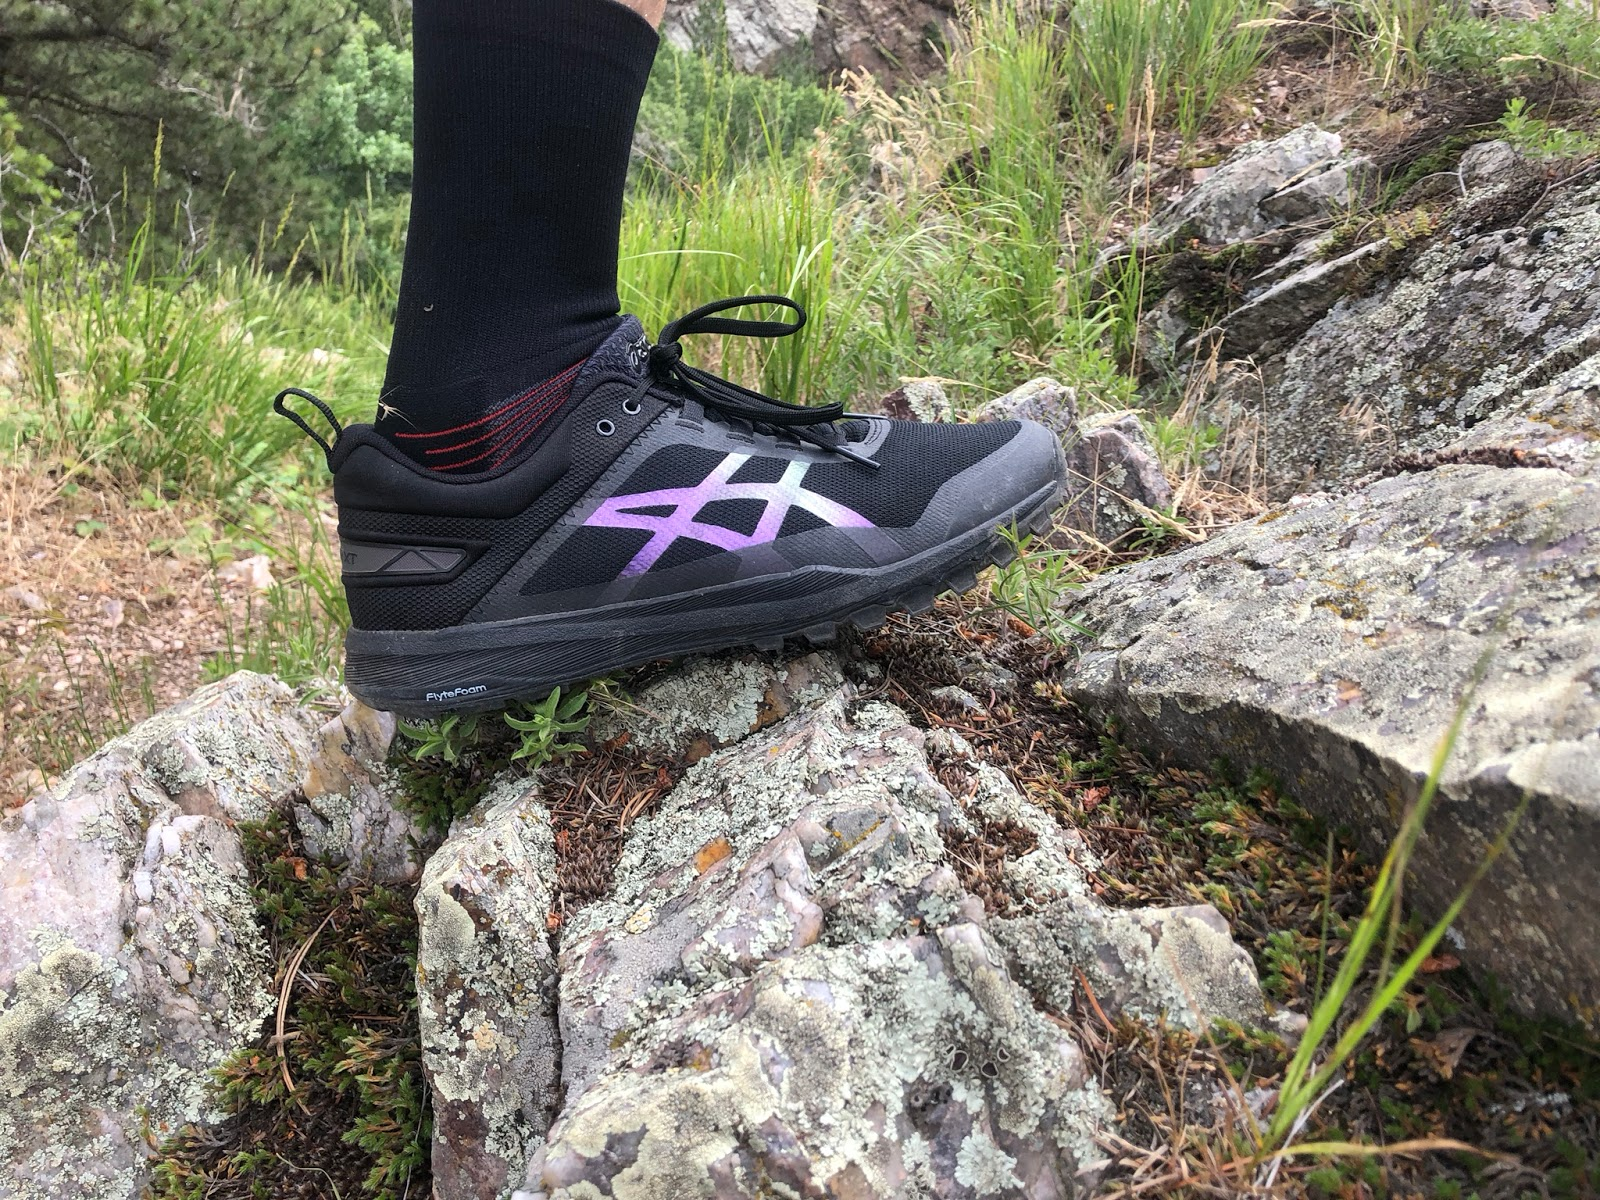 Road Trail Run: Asics Gecko XT Review - Rock Crawler Extraordinaire